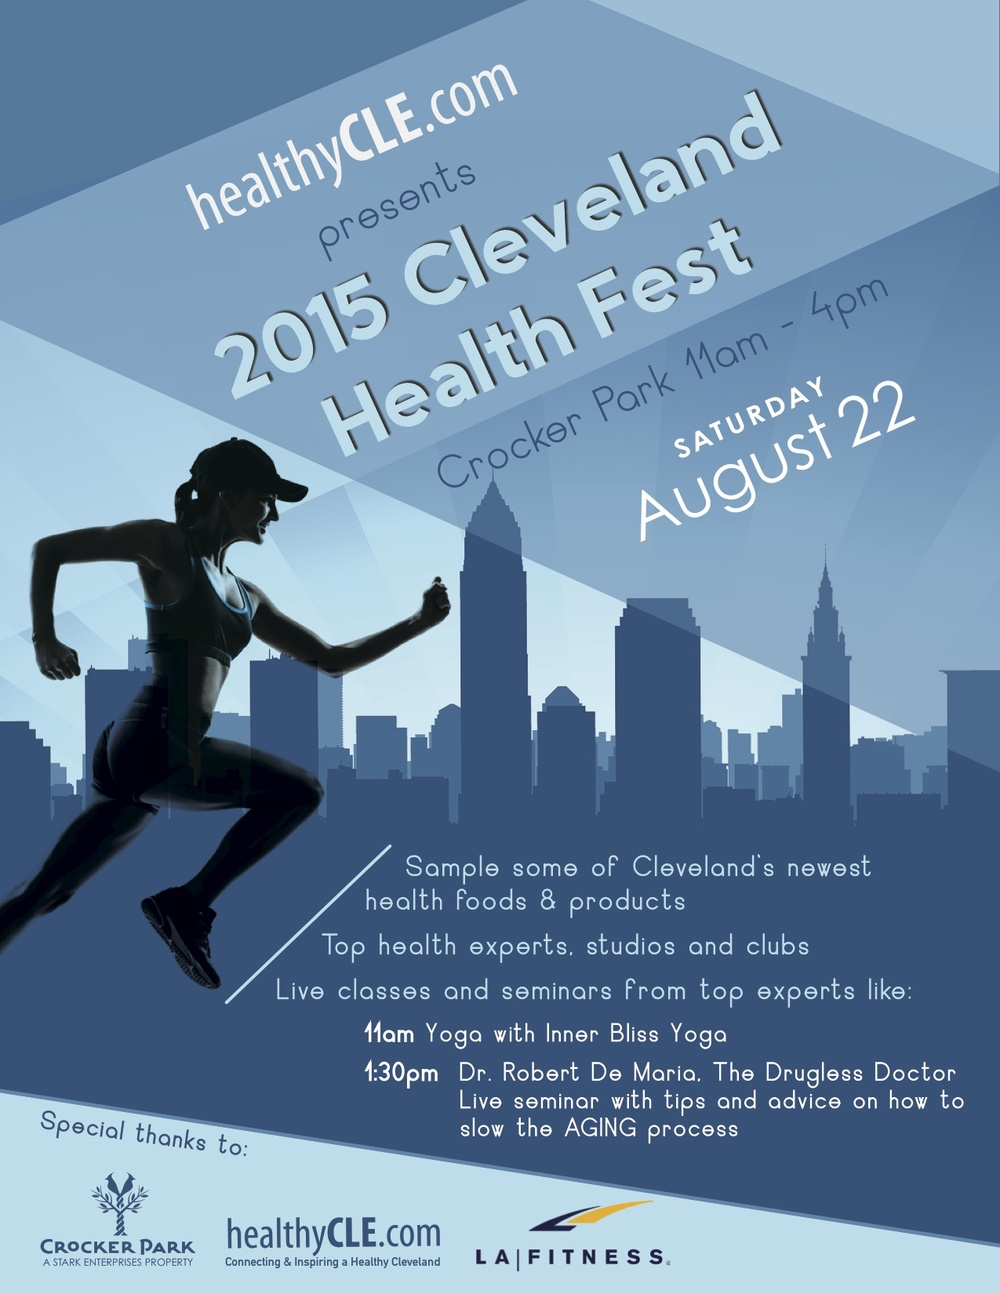 Register below for free yoga at CLE Health Fest